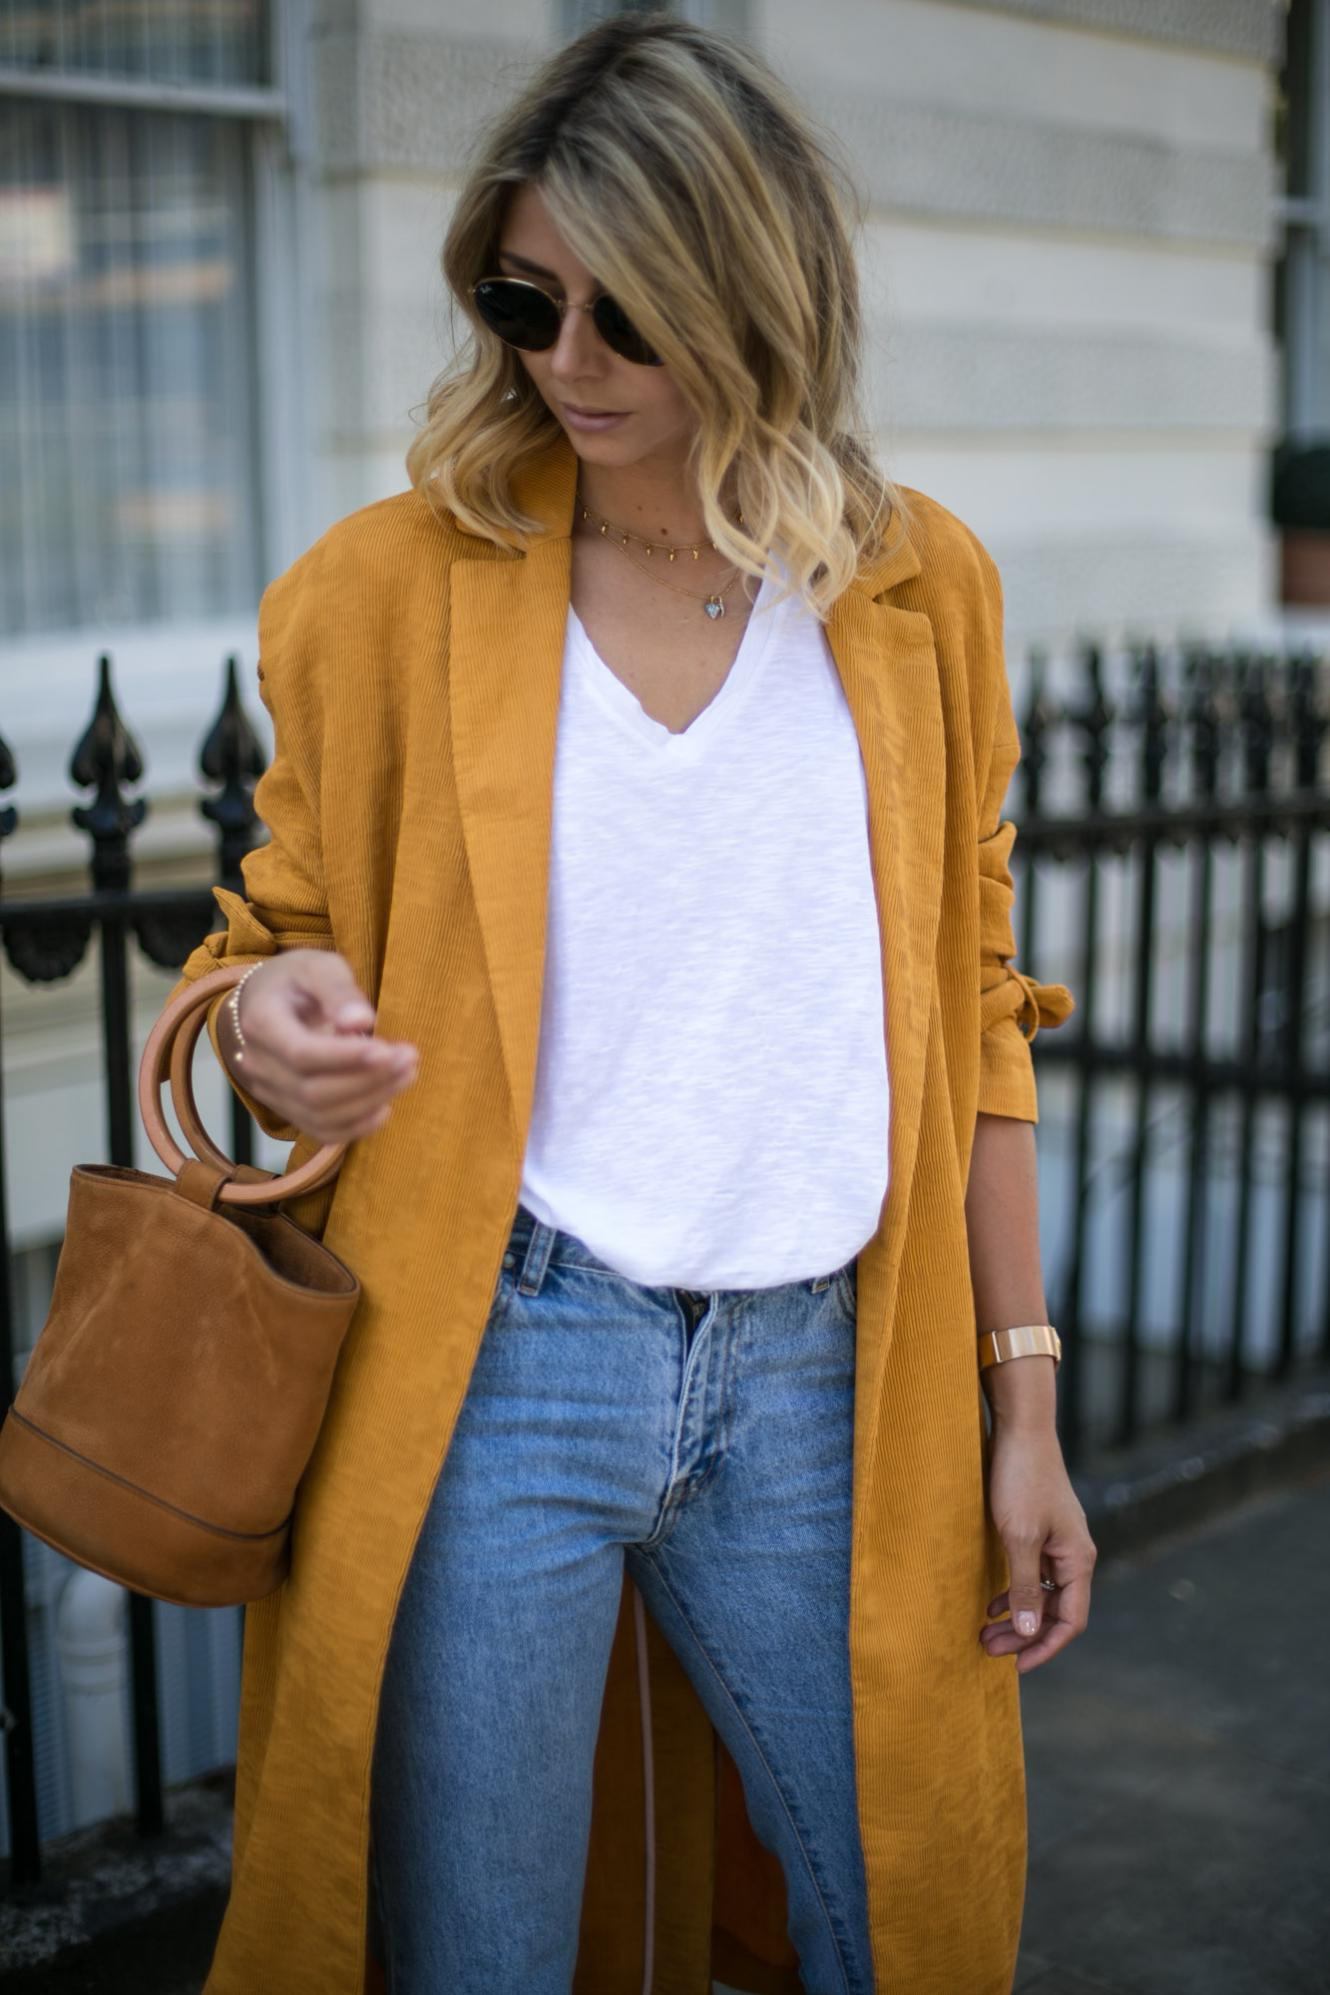 Emma Hill wears Mustard duster coat, cropped frayed jeans, basic white t shirt, Simon Miller Bonsai bag, summer outfit